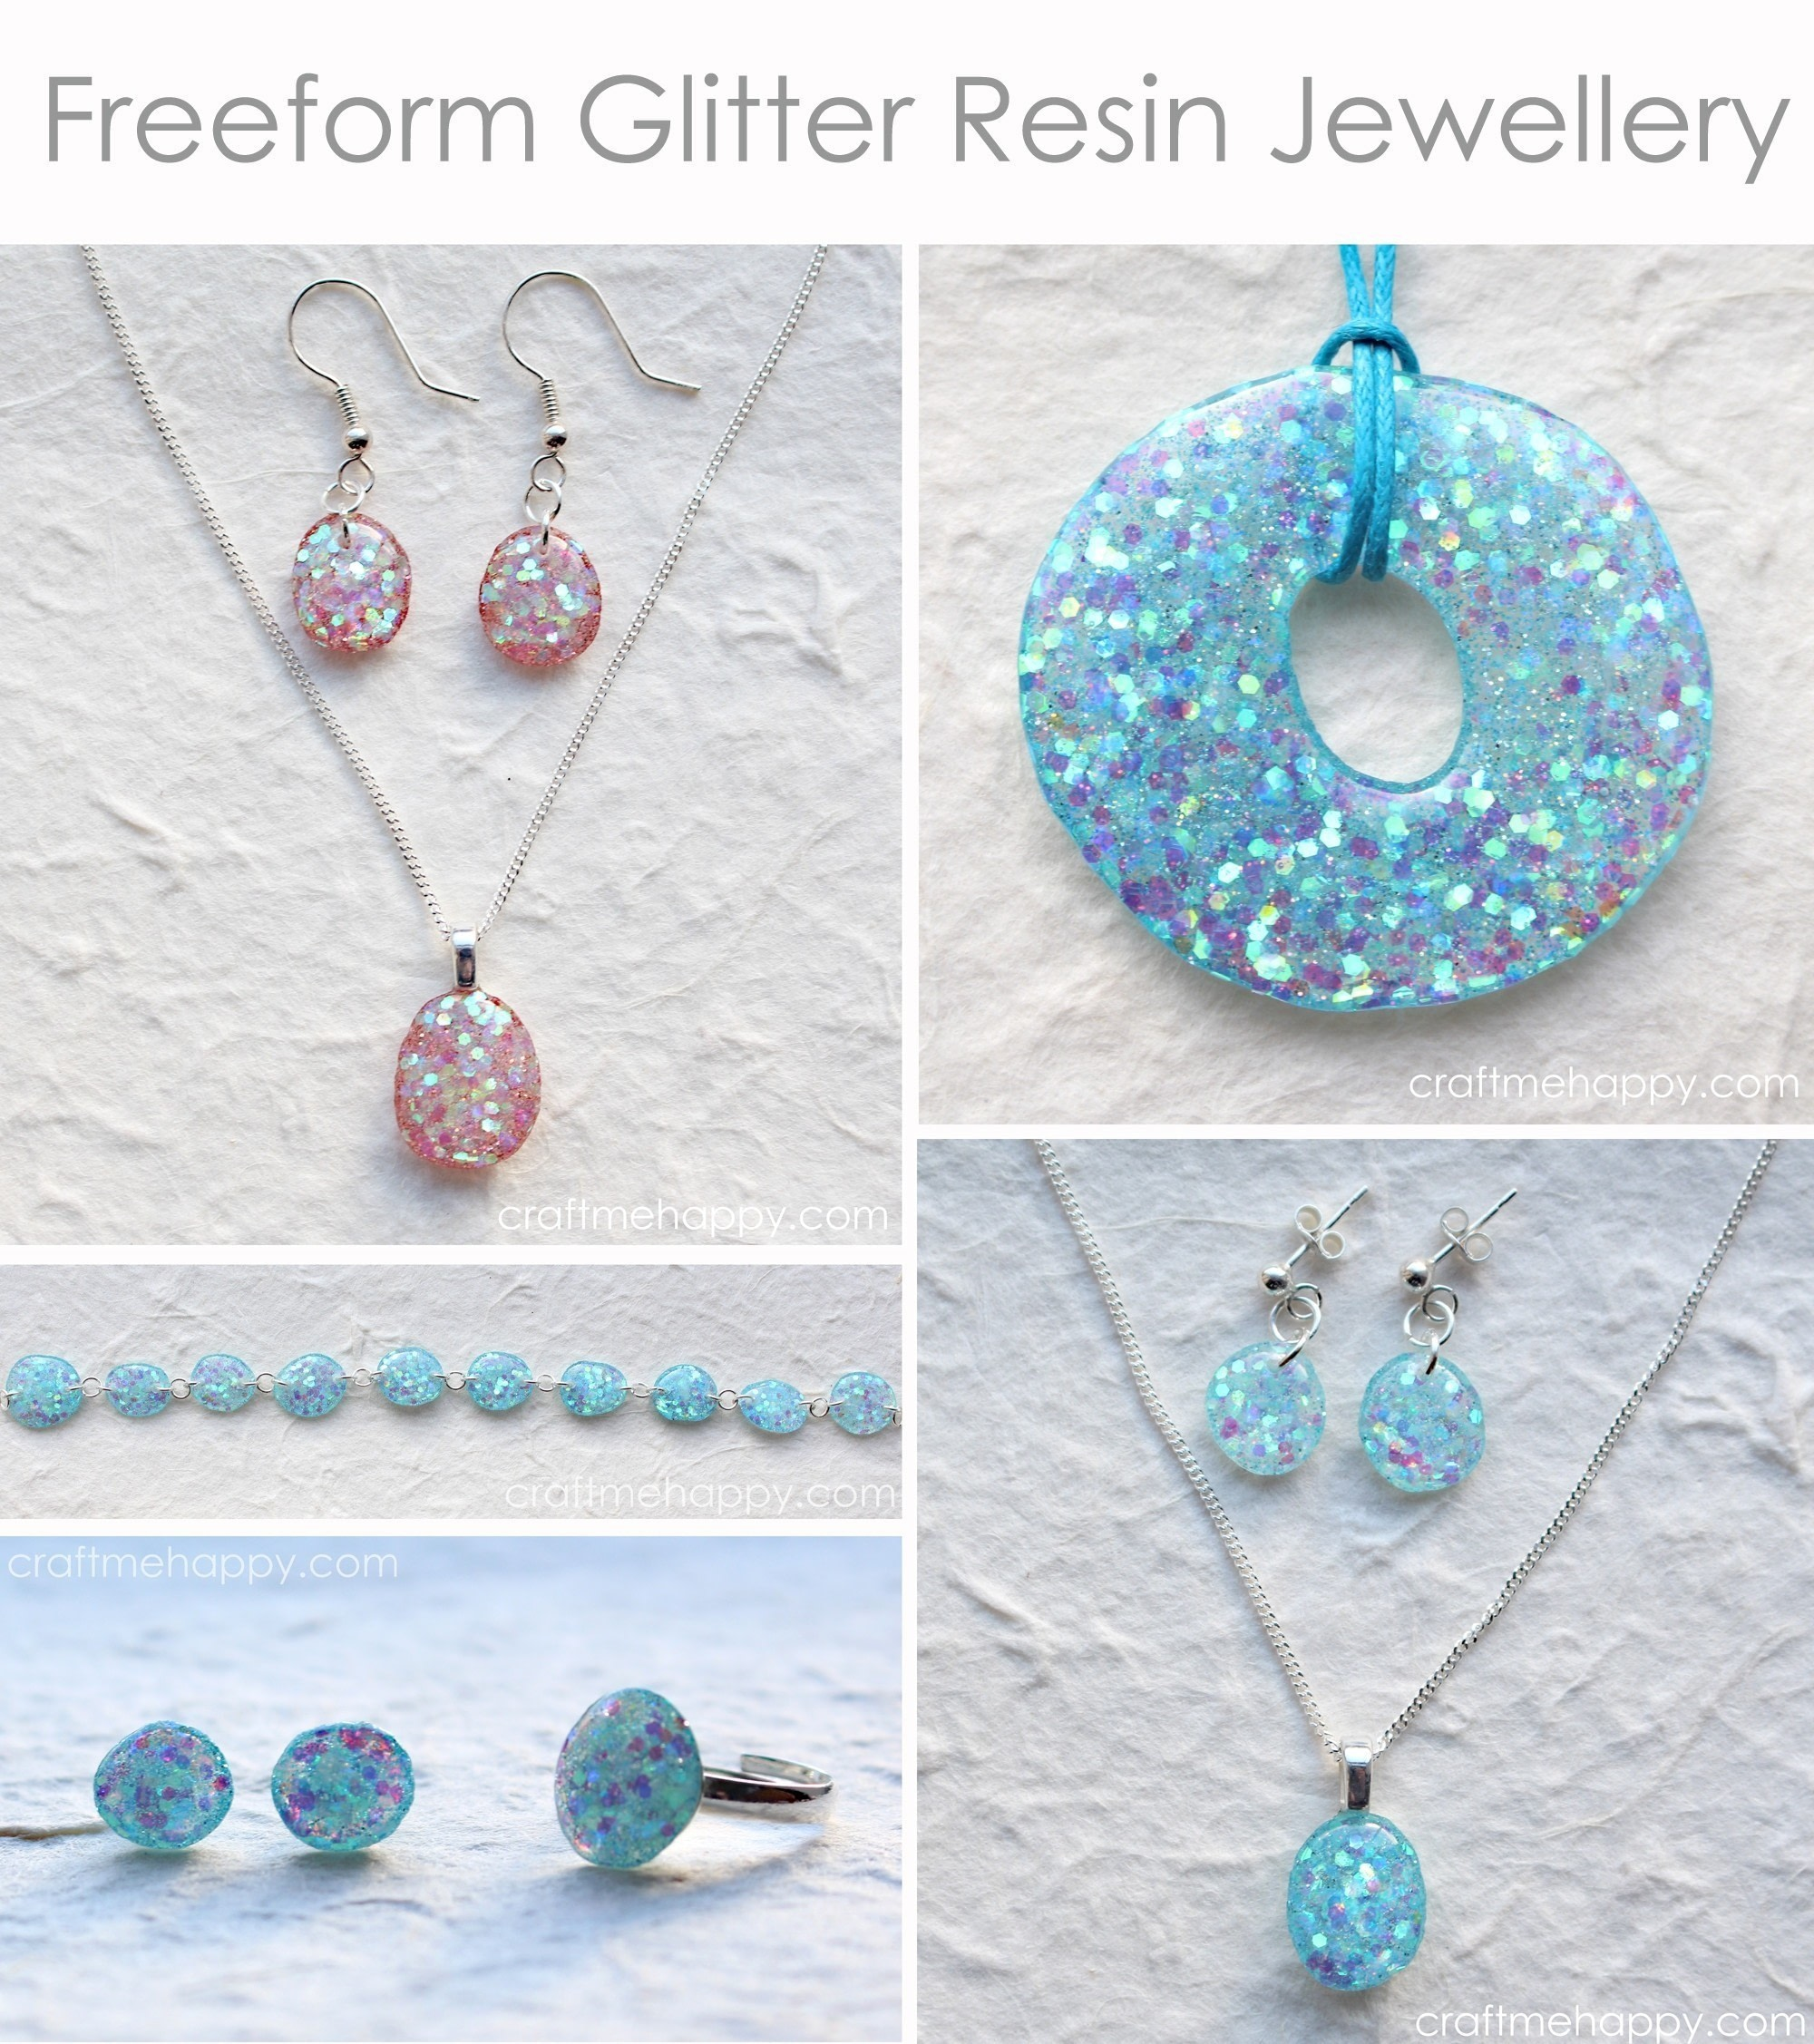 Freeform resin jewellery how to make a resin pendant jewelry on freeform resin jewellery how to make a resin pendant jewelry on cut out keep aloadofball Images